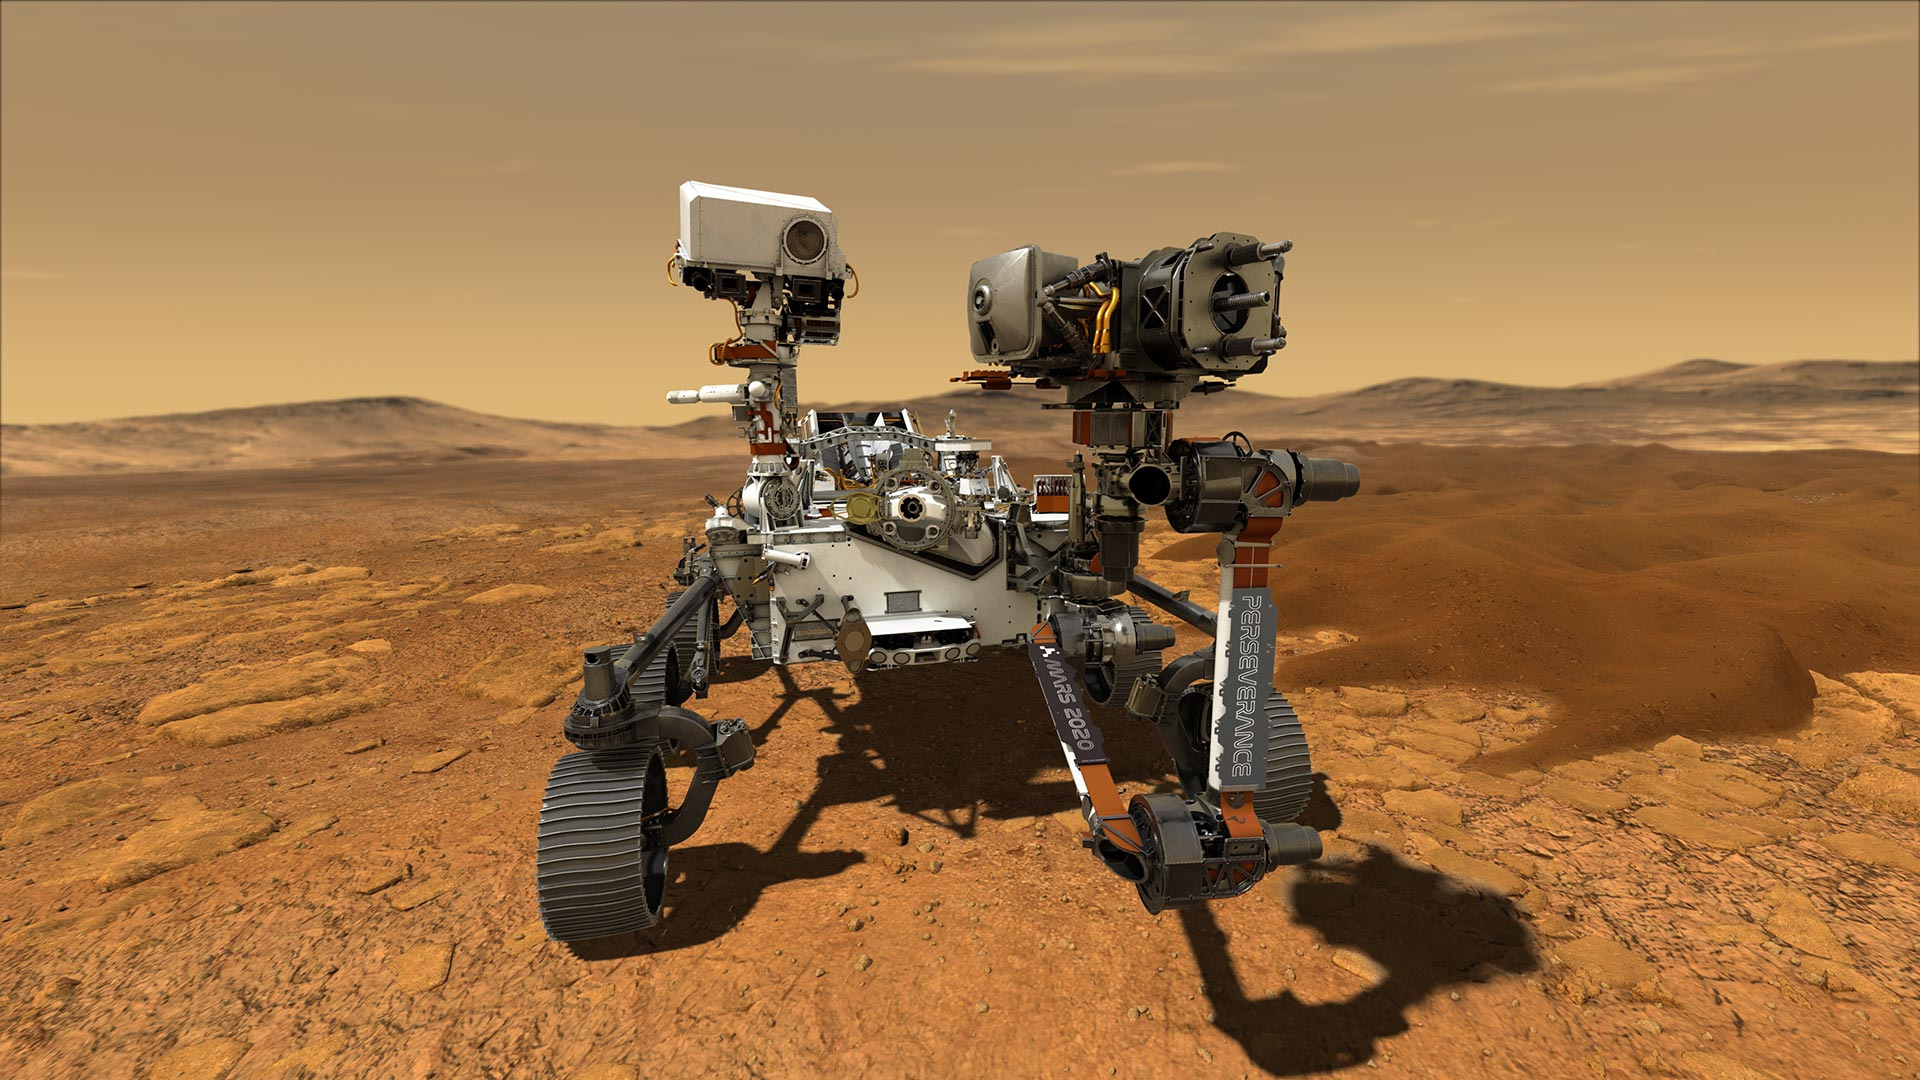 Why 3 countries are sending robots to Mars